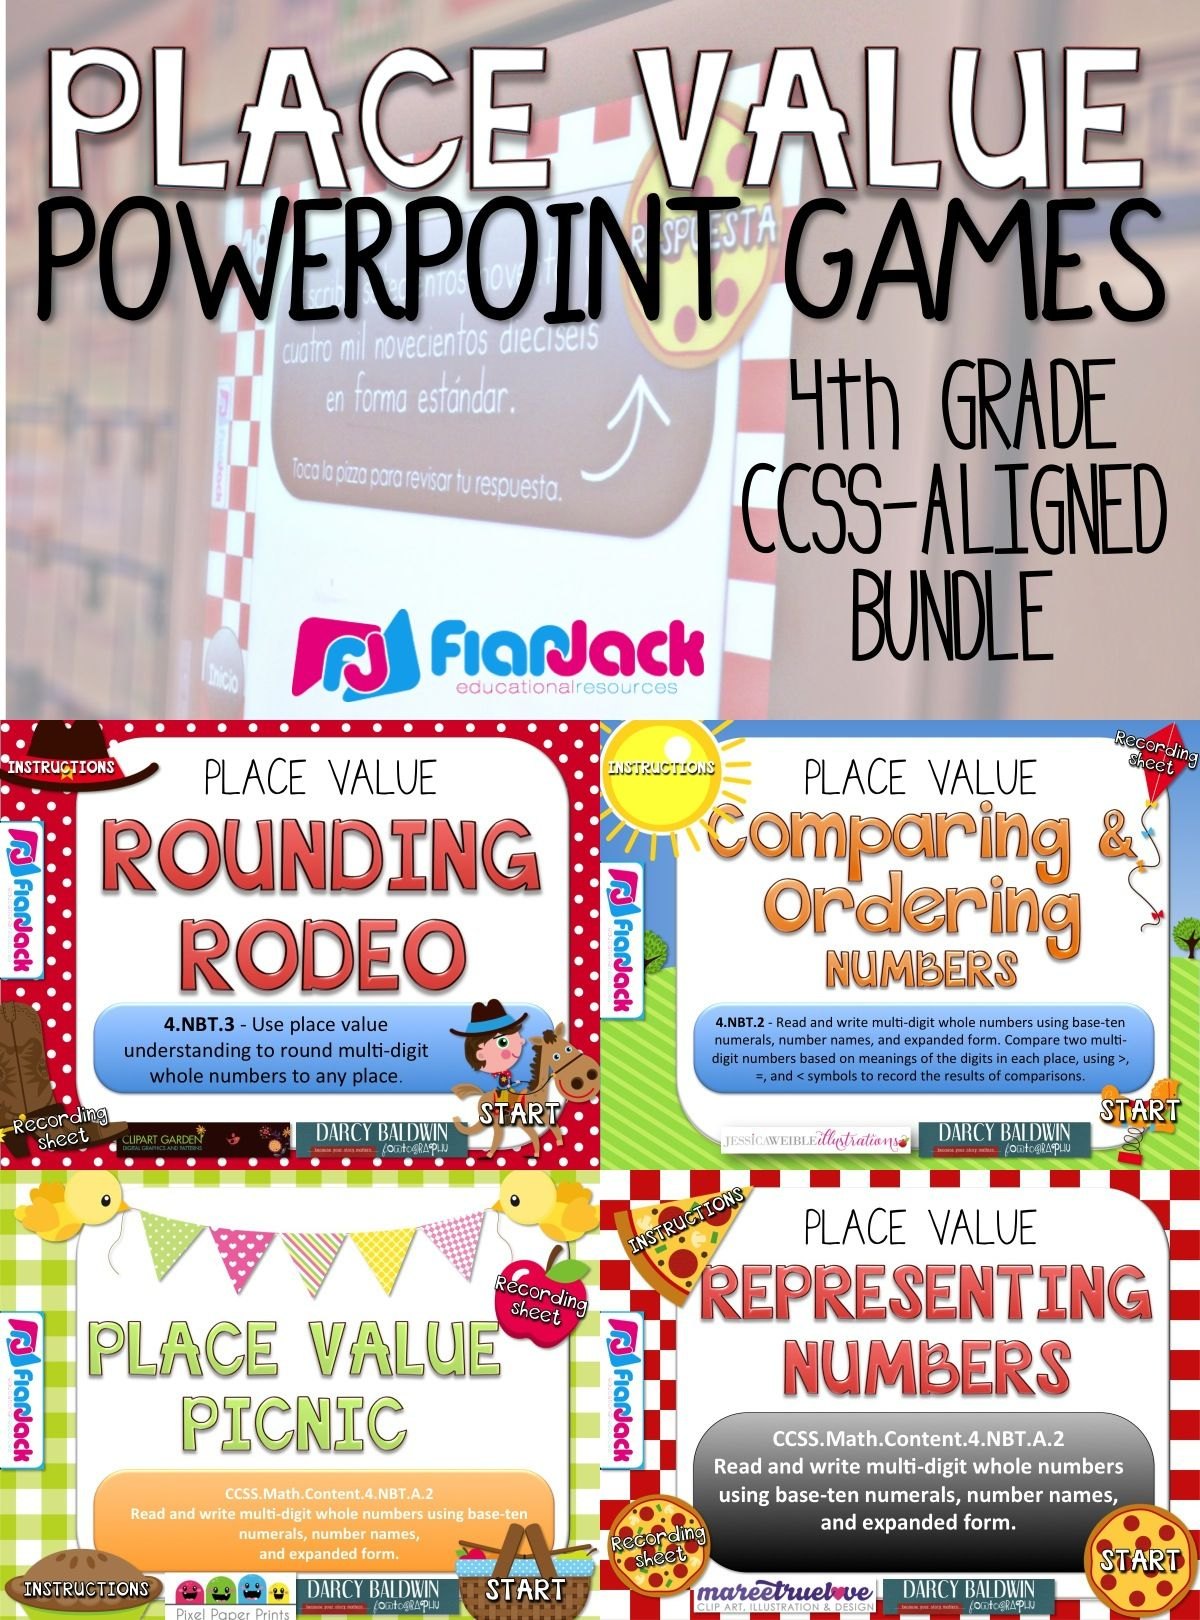 hight resolution of 4th grade place value powerpoint games bundle this bundle contains 4 ccss aligned powerpoint games that will motivate your students to practice place